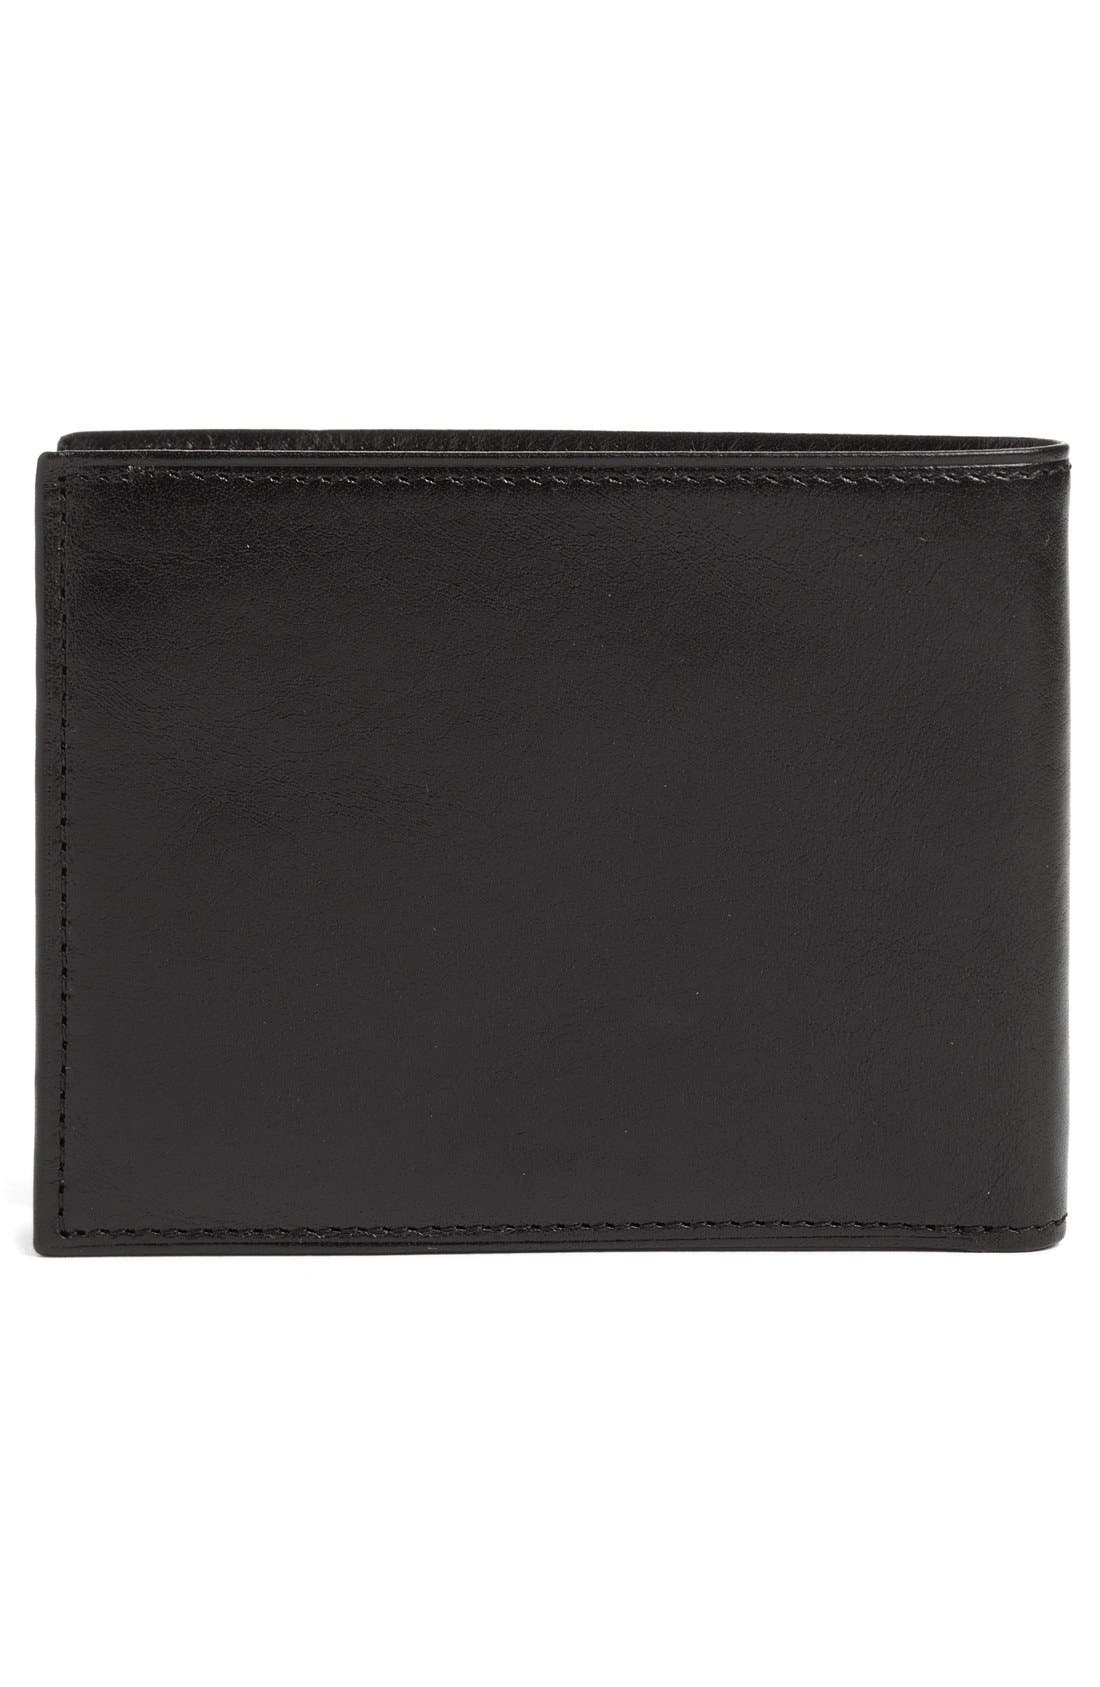 BOSCA,                             Leather Bifold Wallet,                             Alternate thumbnail 2, color,                             BLACK